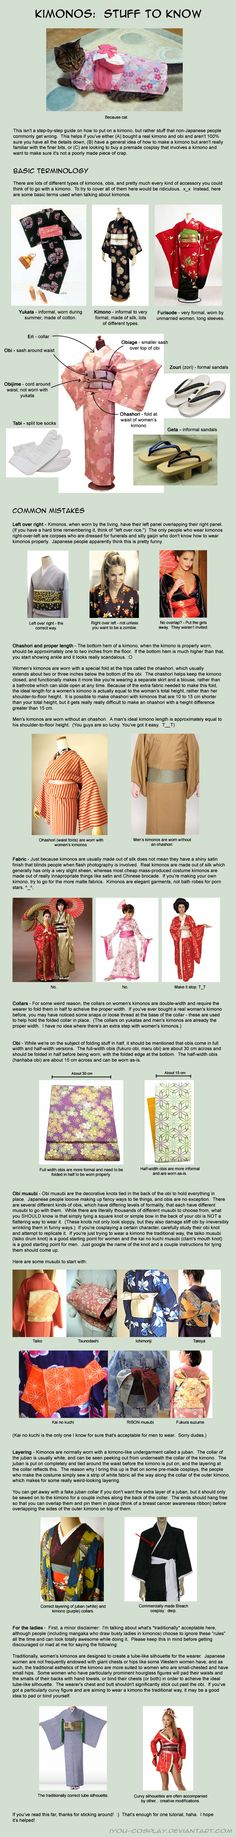 Kimonos:  Stuff to Know by iyou-cosplay.deviantart.com on @deviantART